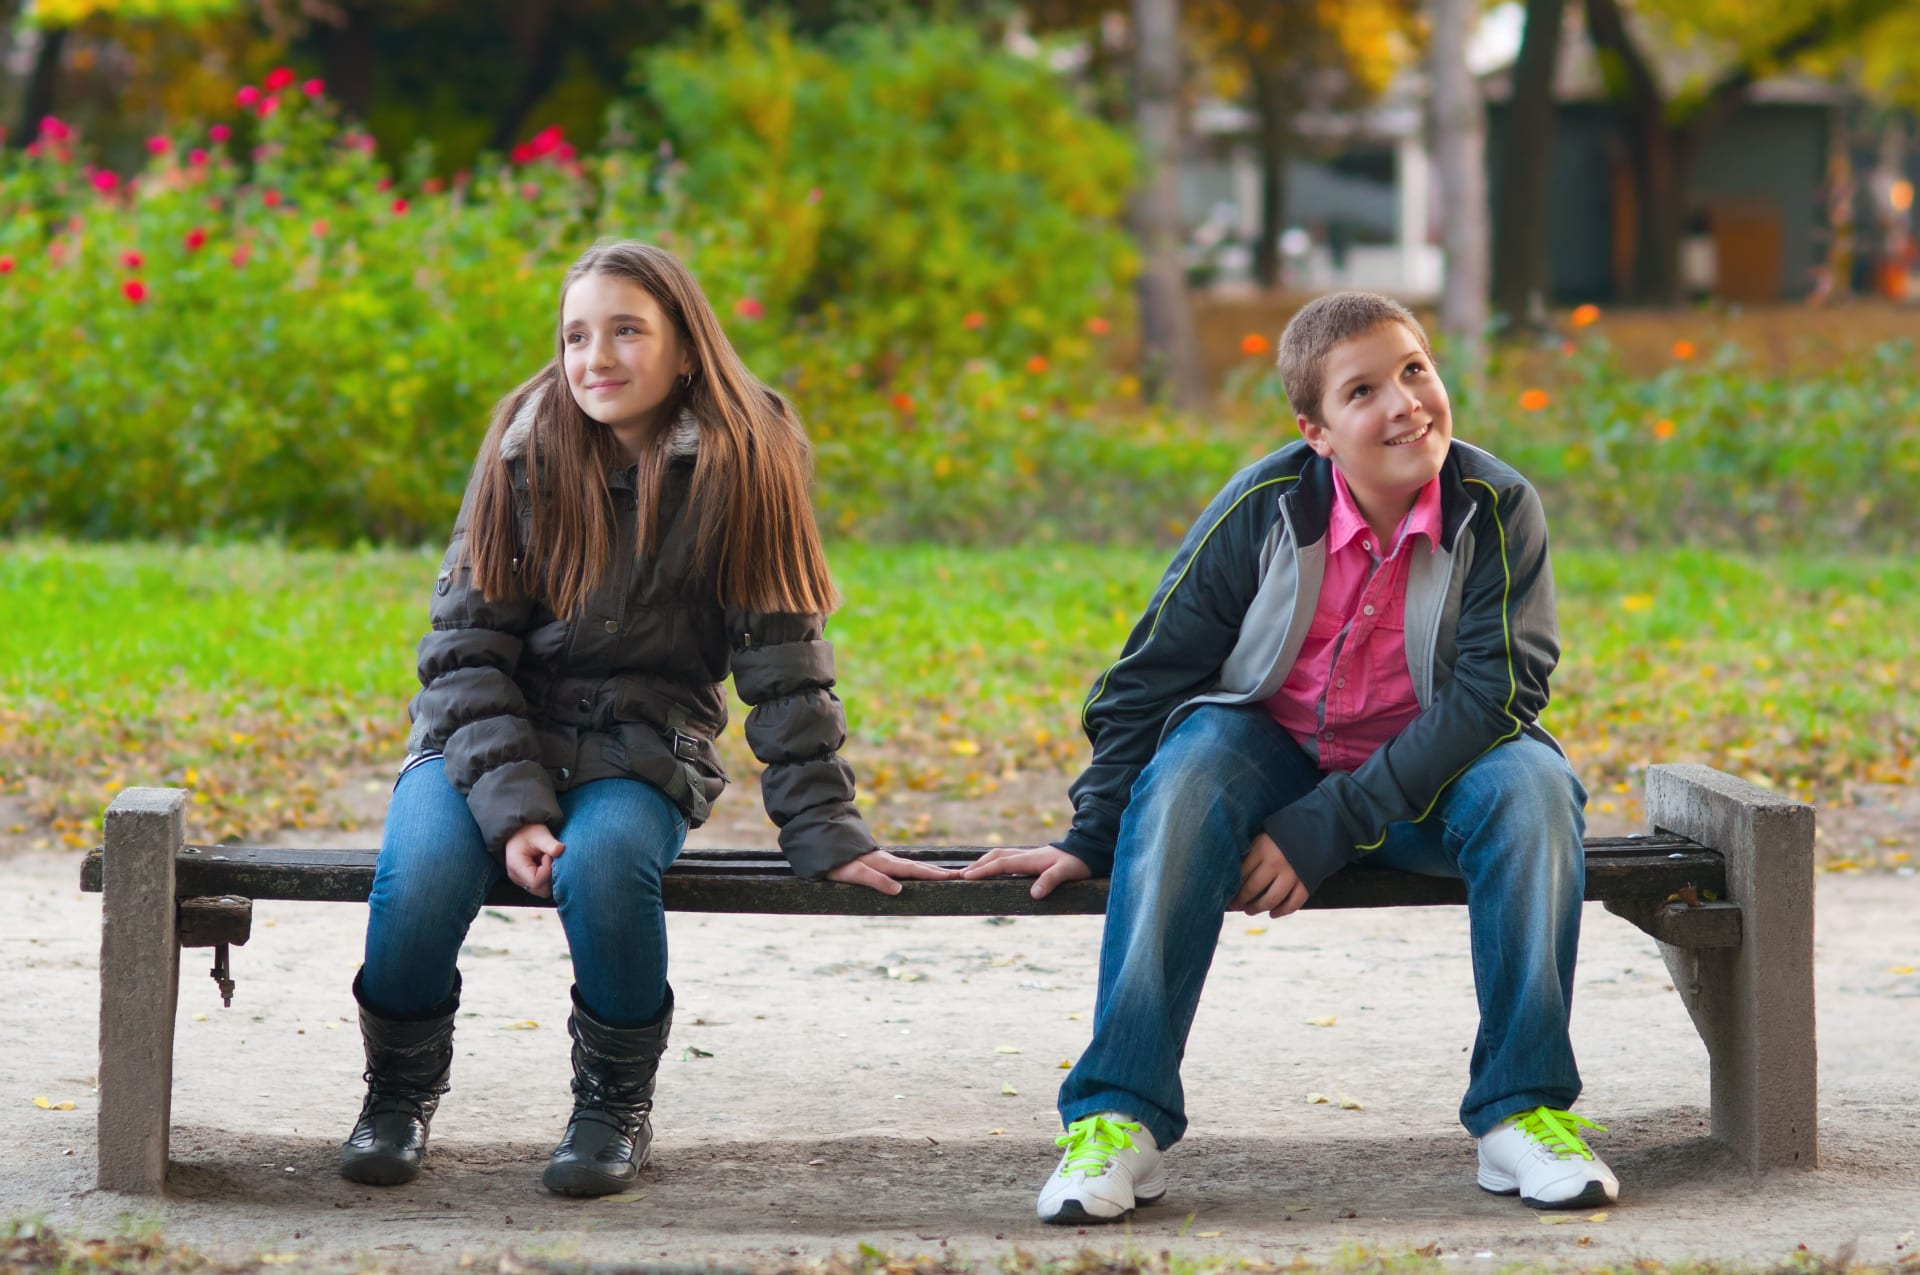 Girl and a boy sitting on a bench touching their hands while looking away